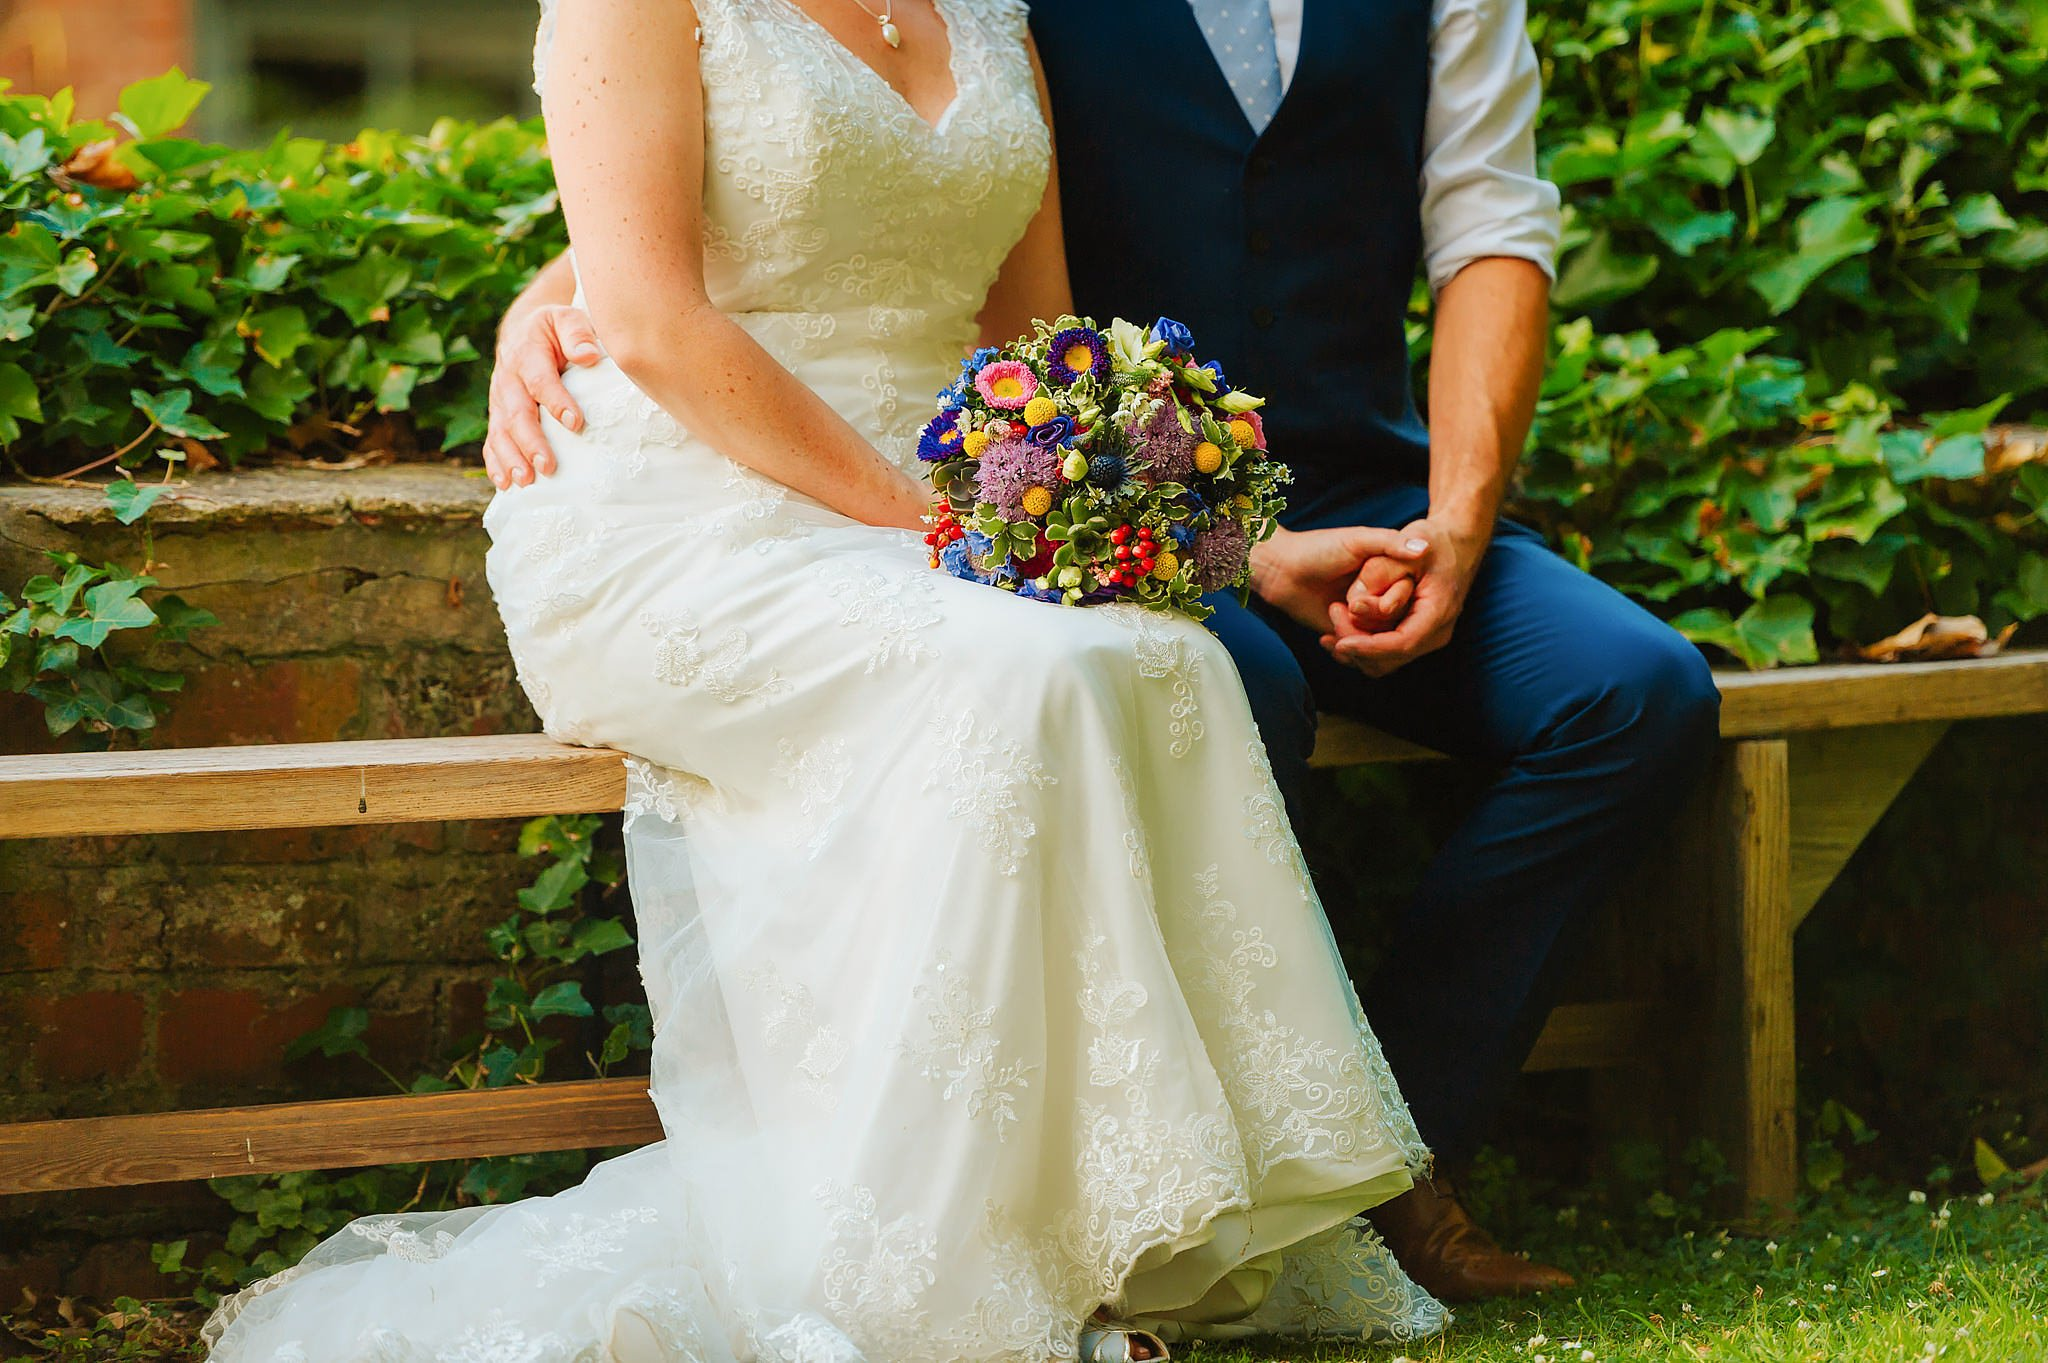 Wedding photography at Hellens Manor in Herefordshire, West Midlands | Shelley + Ian 42